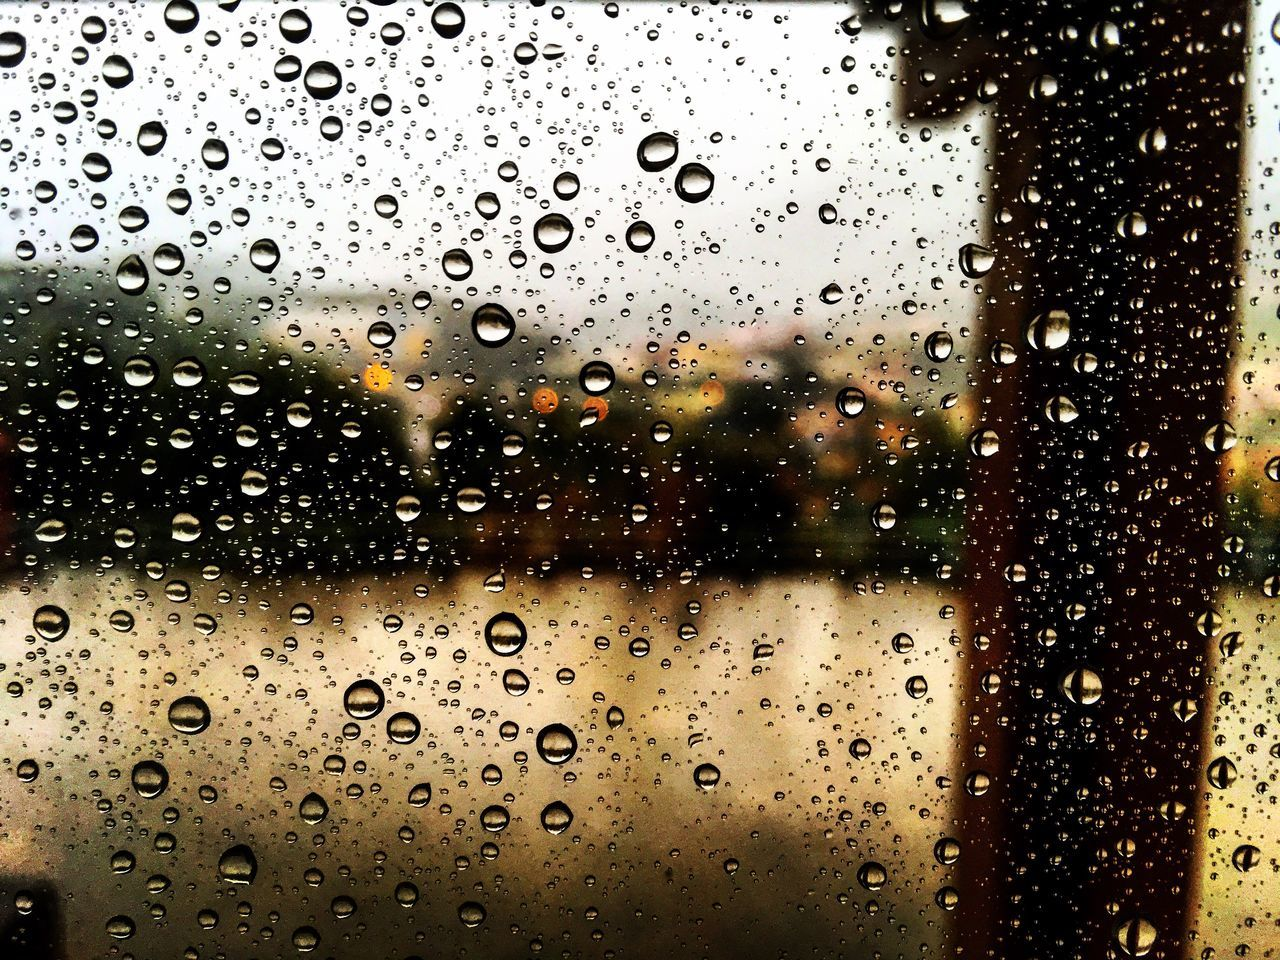 Window Wet Rain Drop Water Transportation Indoors  Season  RainDrop Illuminated Transparent Glass - Material Mode Of Transport Full Frame Sky Rainy Focus On Foreground City Life